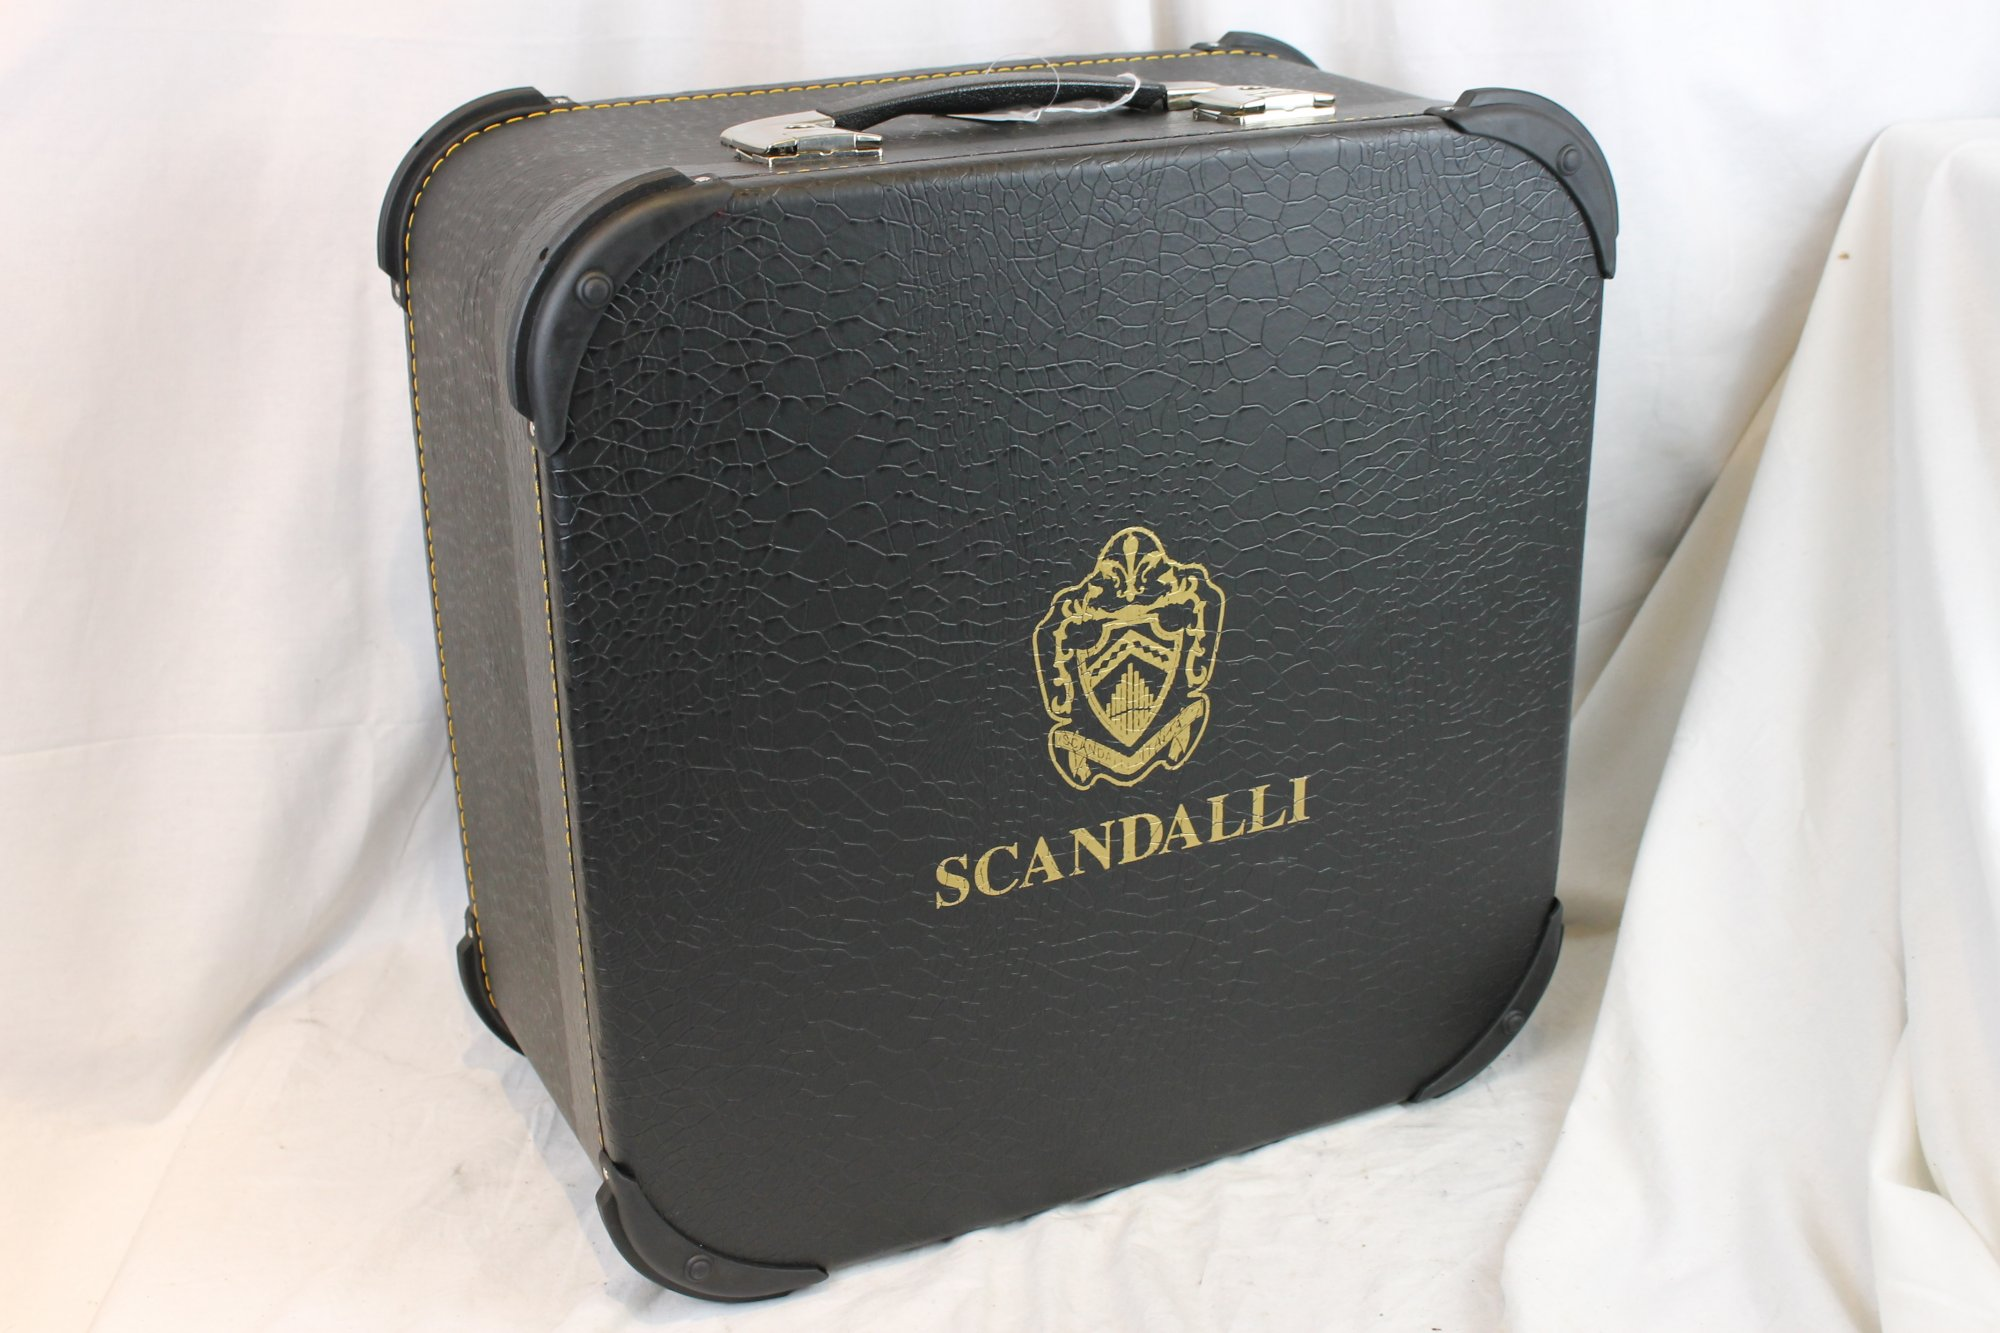 NEW Black Scandalli Hard Case for Accordion 18.5 x 18.25 x 9